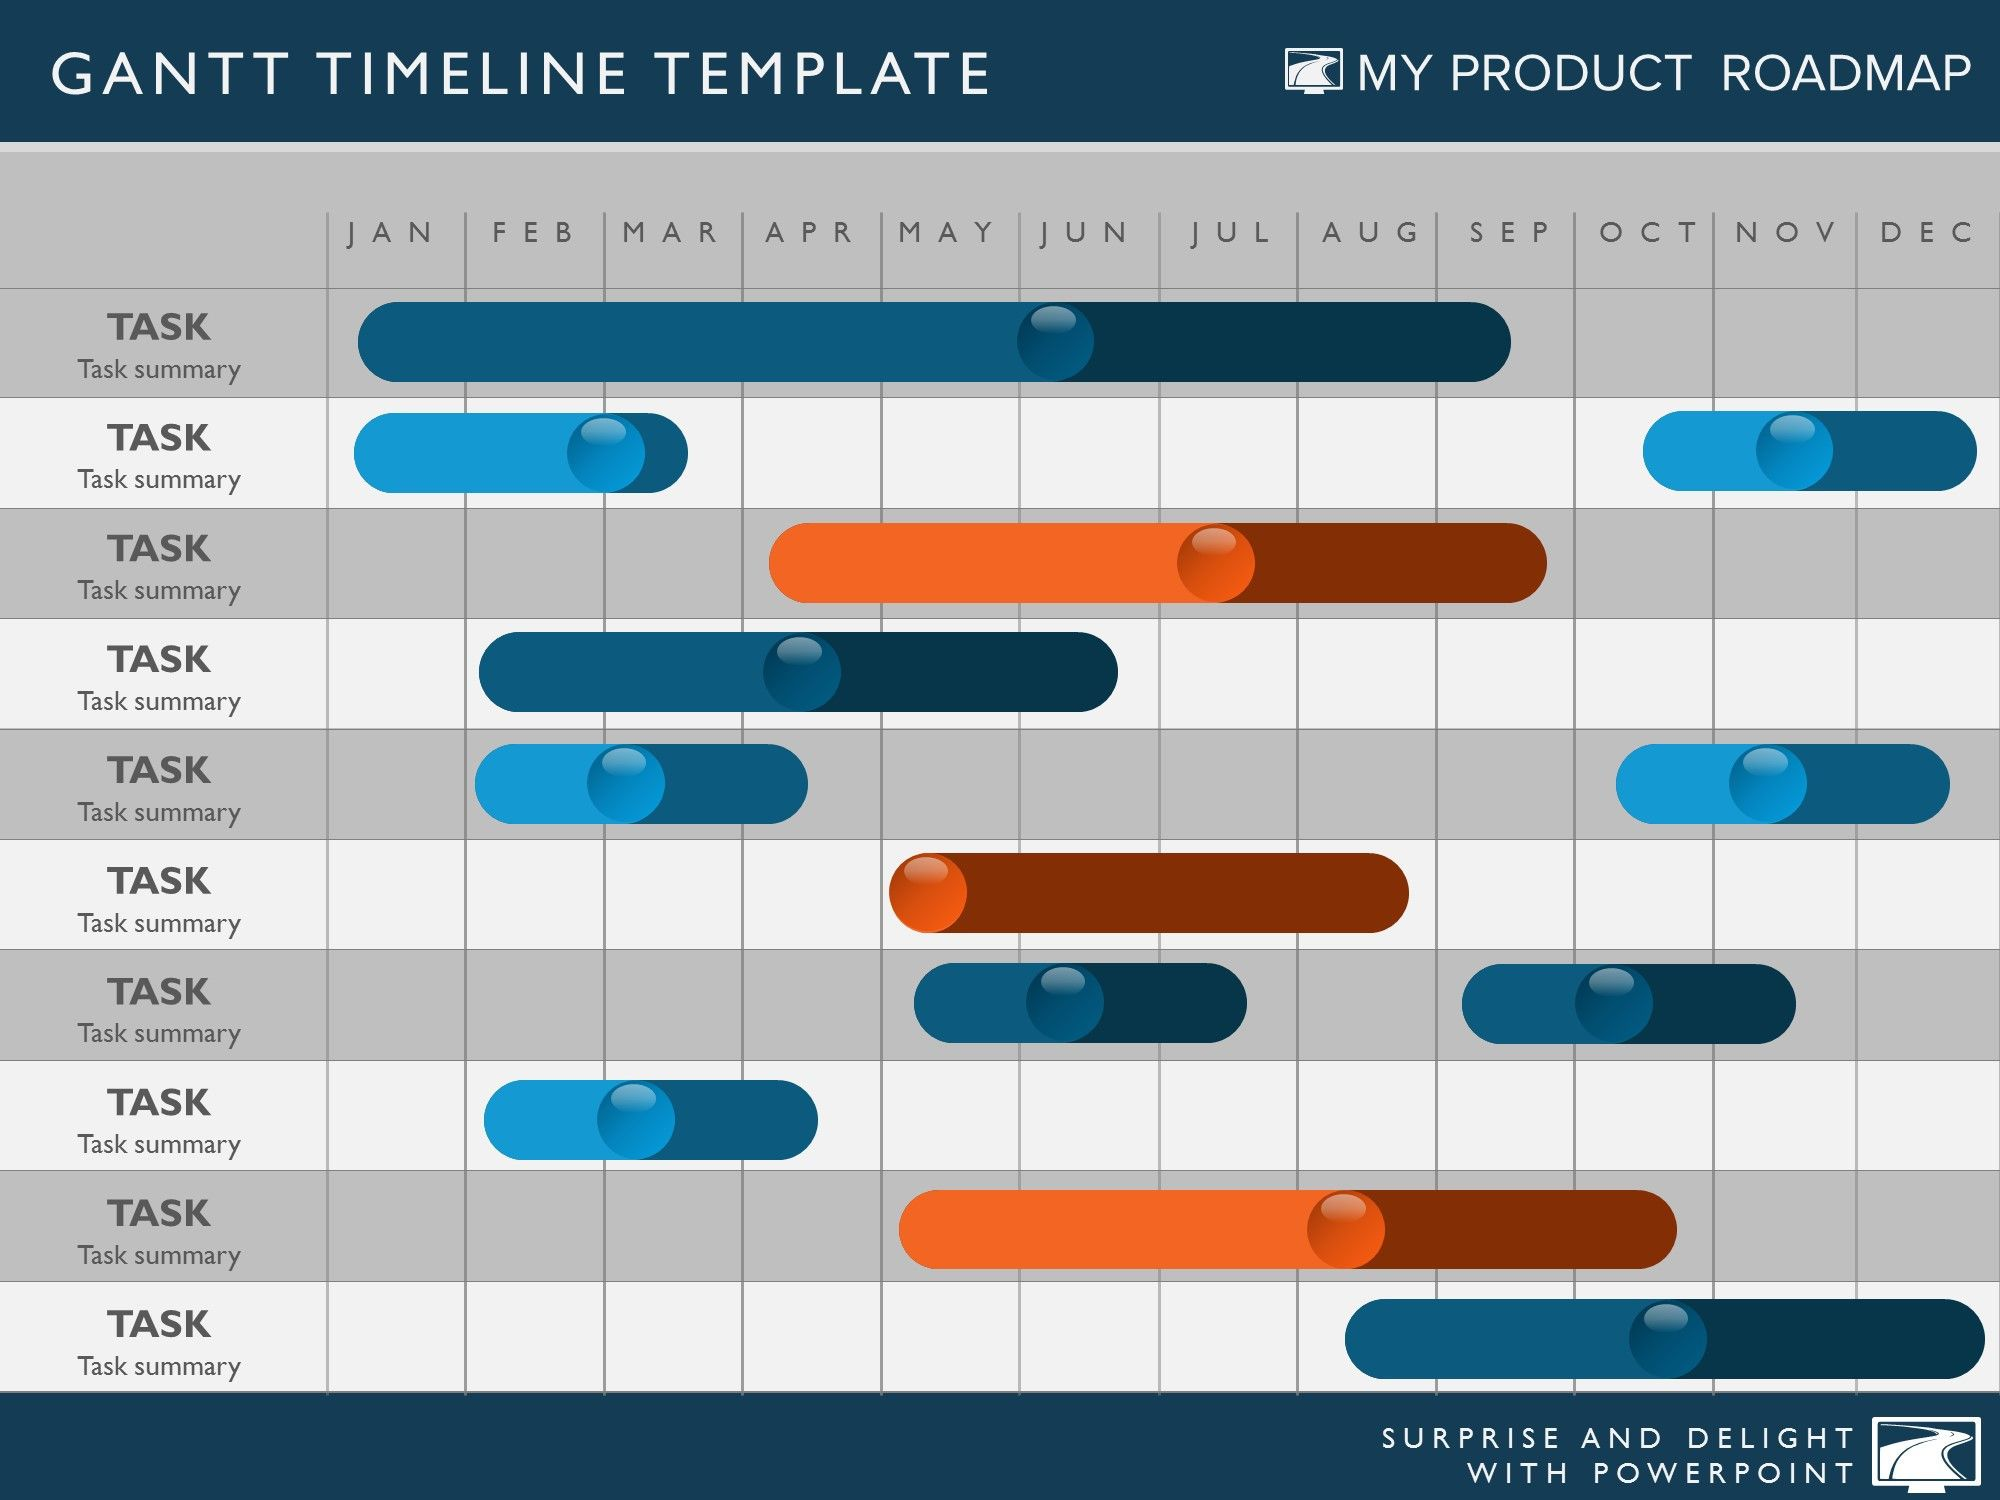 Timeline Template My Product Roadmap Products Roadmap - Roadmap timeline template